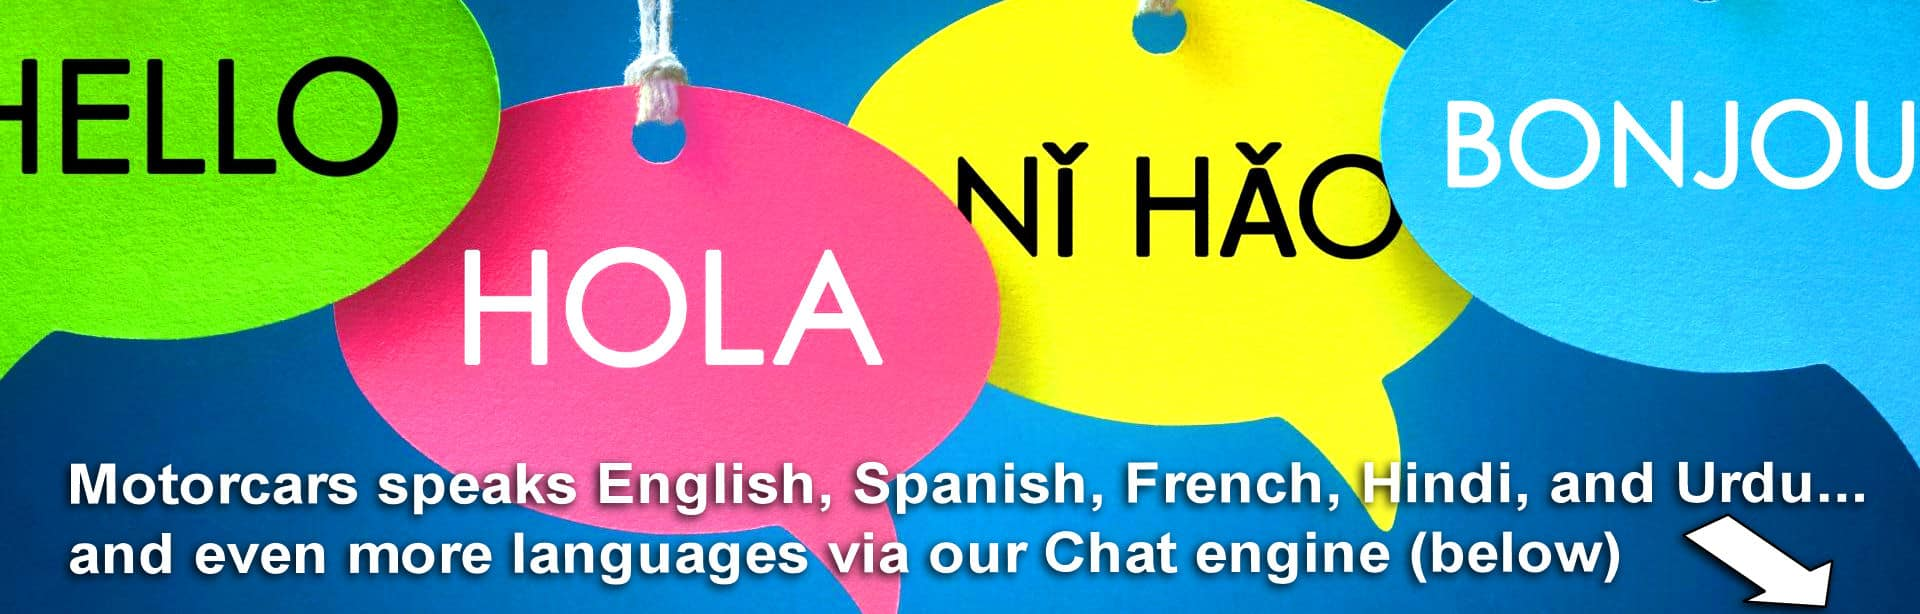 More Languages via Our Chat Engine